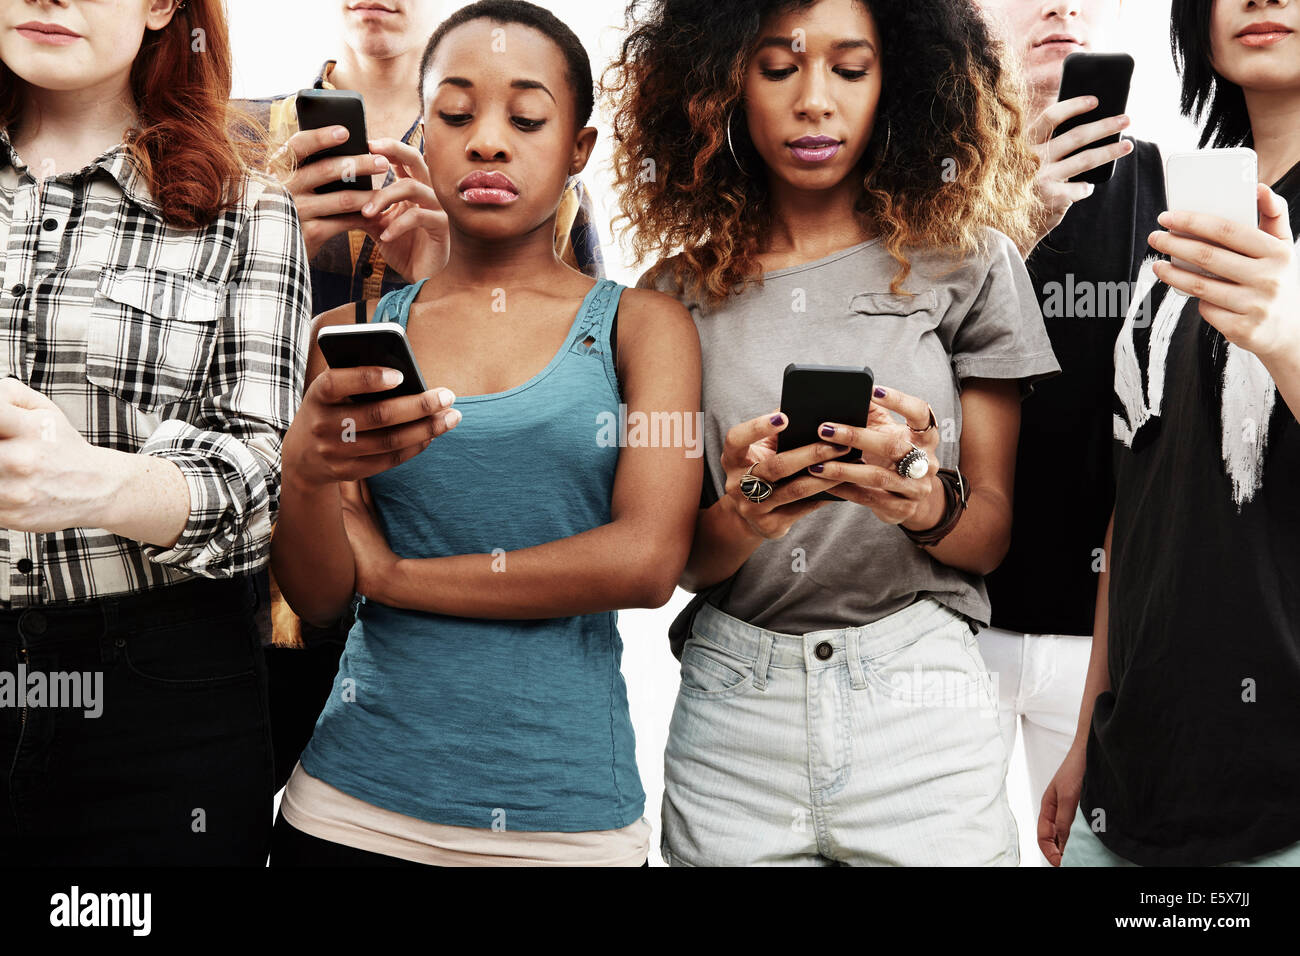 Studio shot of six young adults texting on smartphone - Stock Image